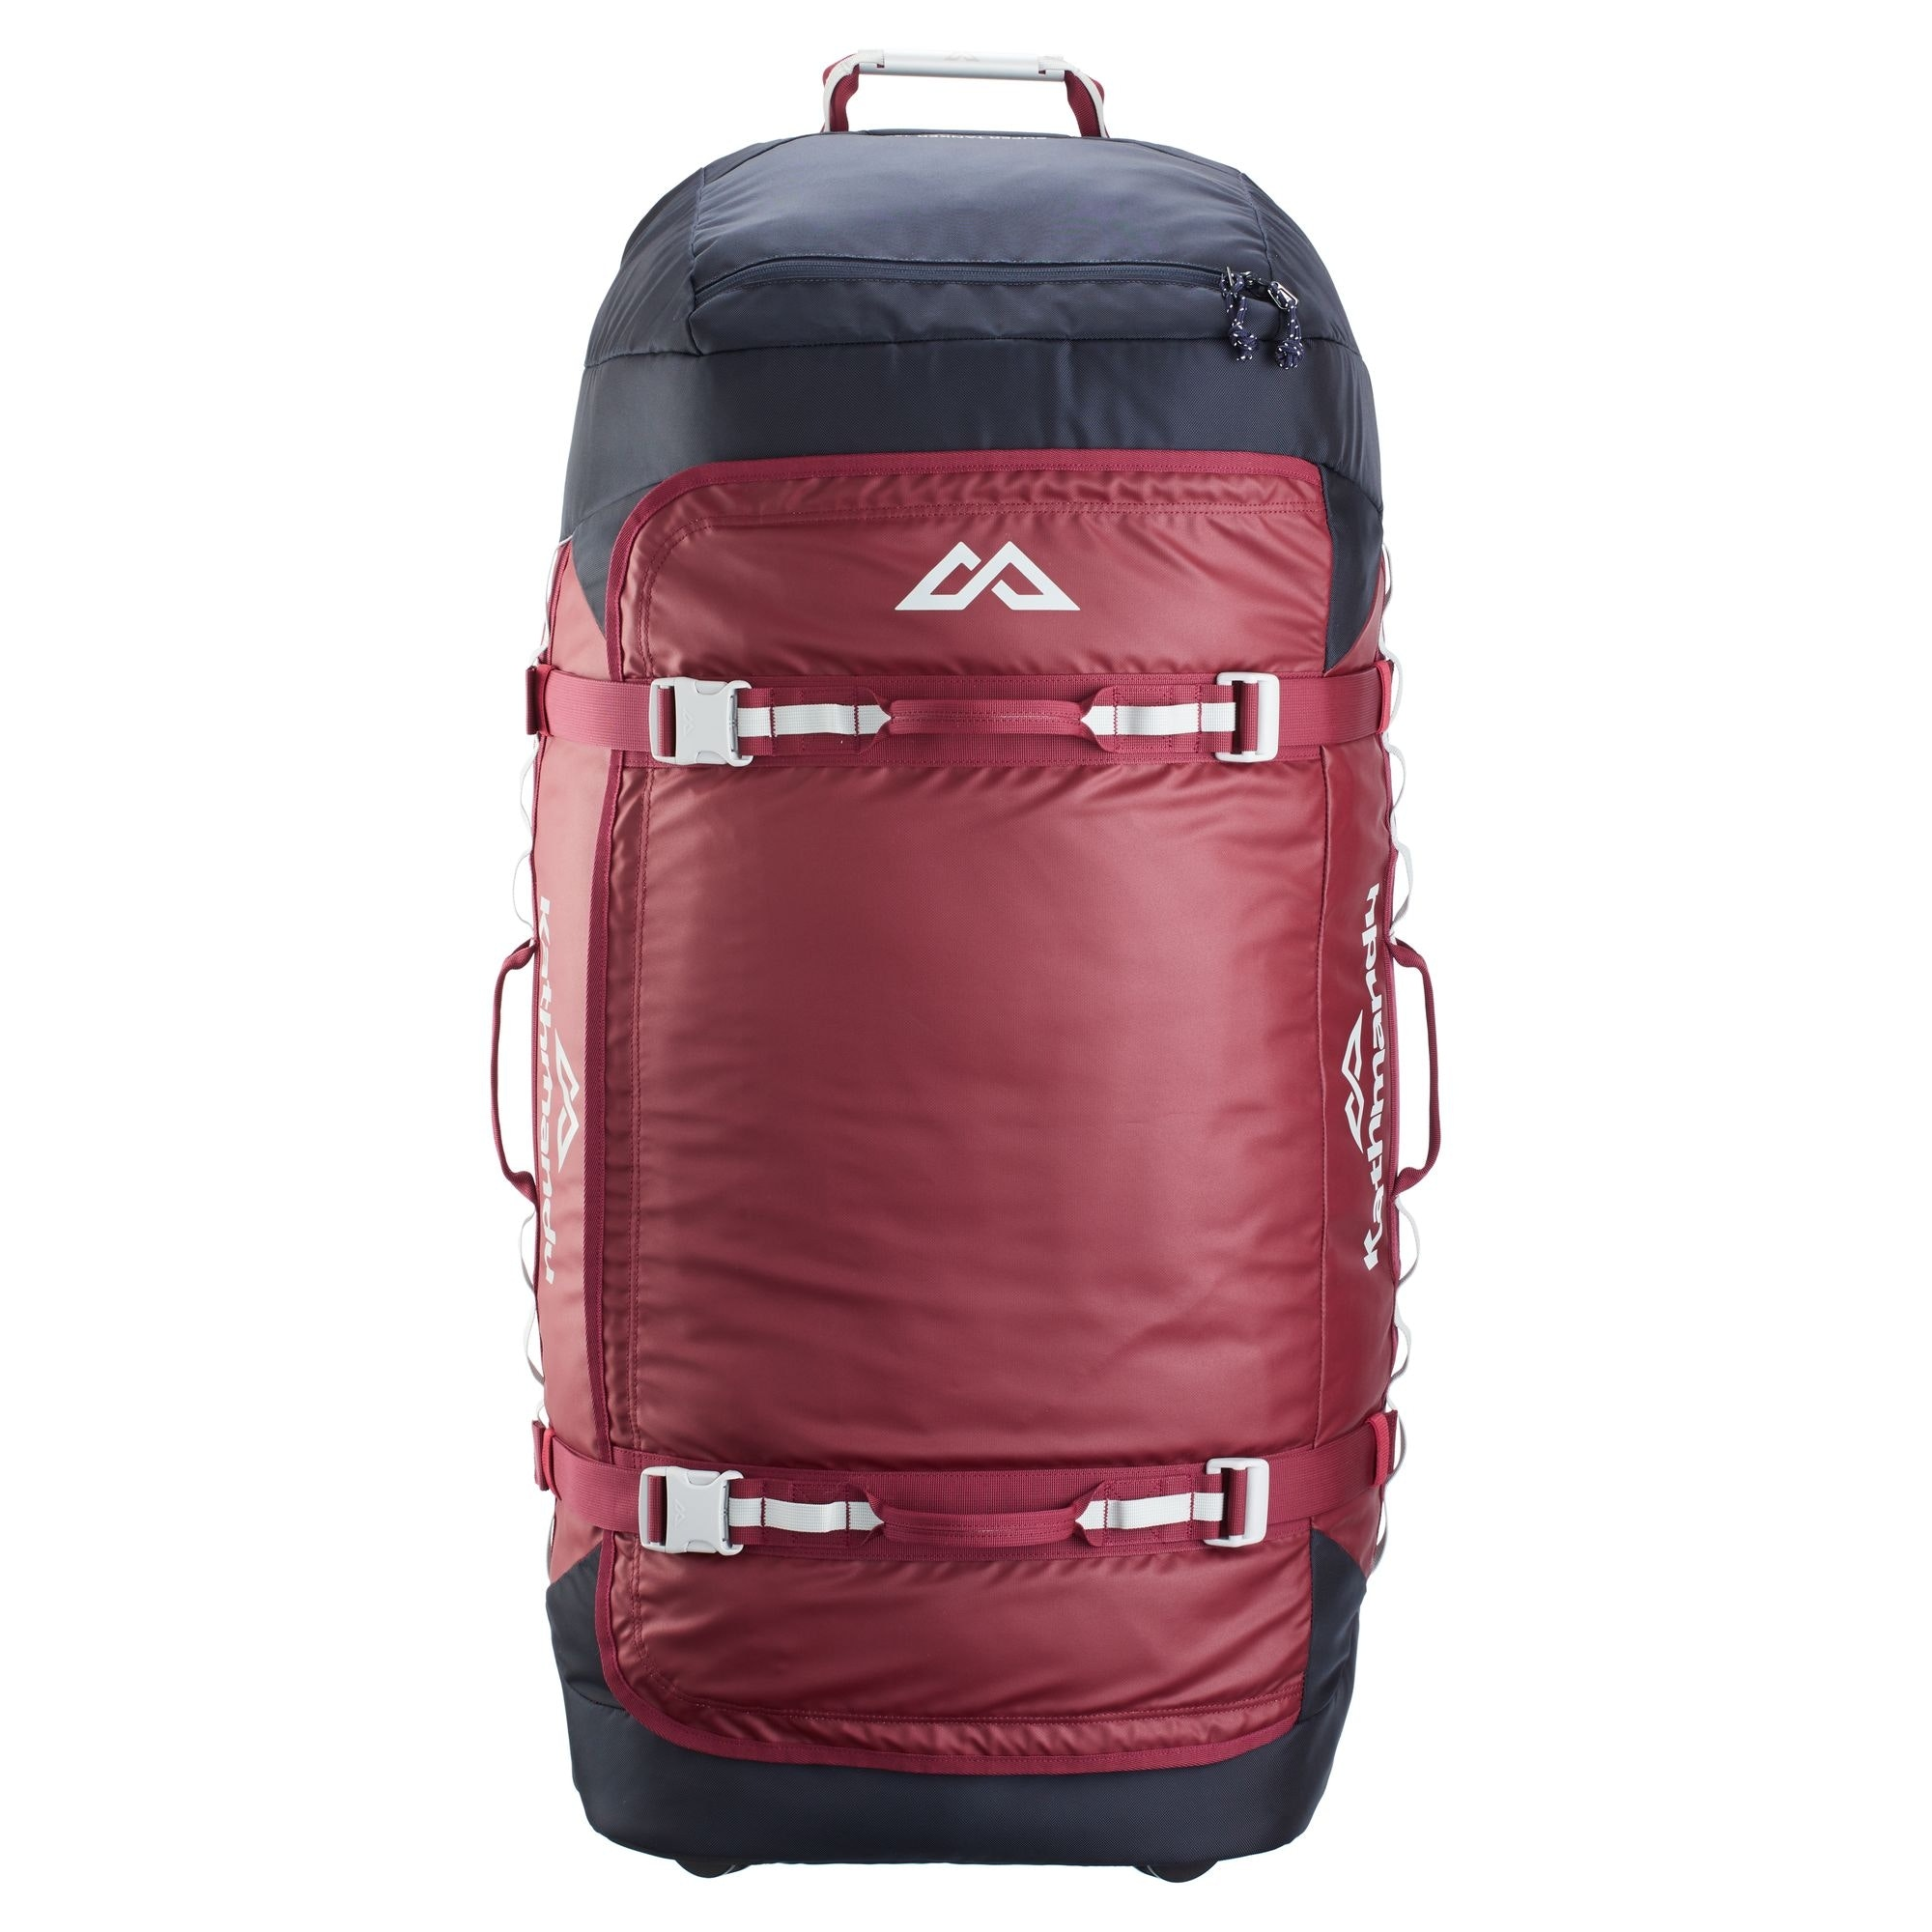 Shopping Trolley Bag On Wheels Australia Wheeled Backpacks Rolling Travel Bag Trolley With Wheels Nz